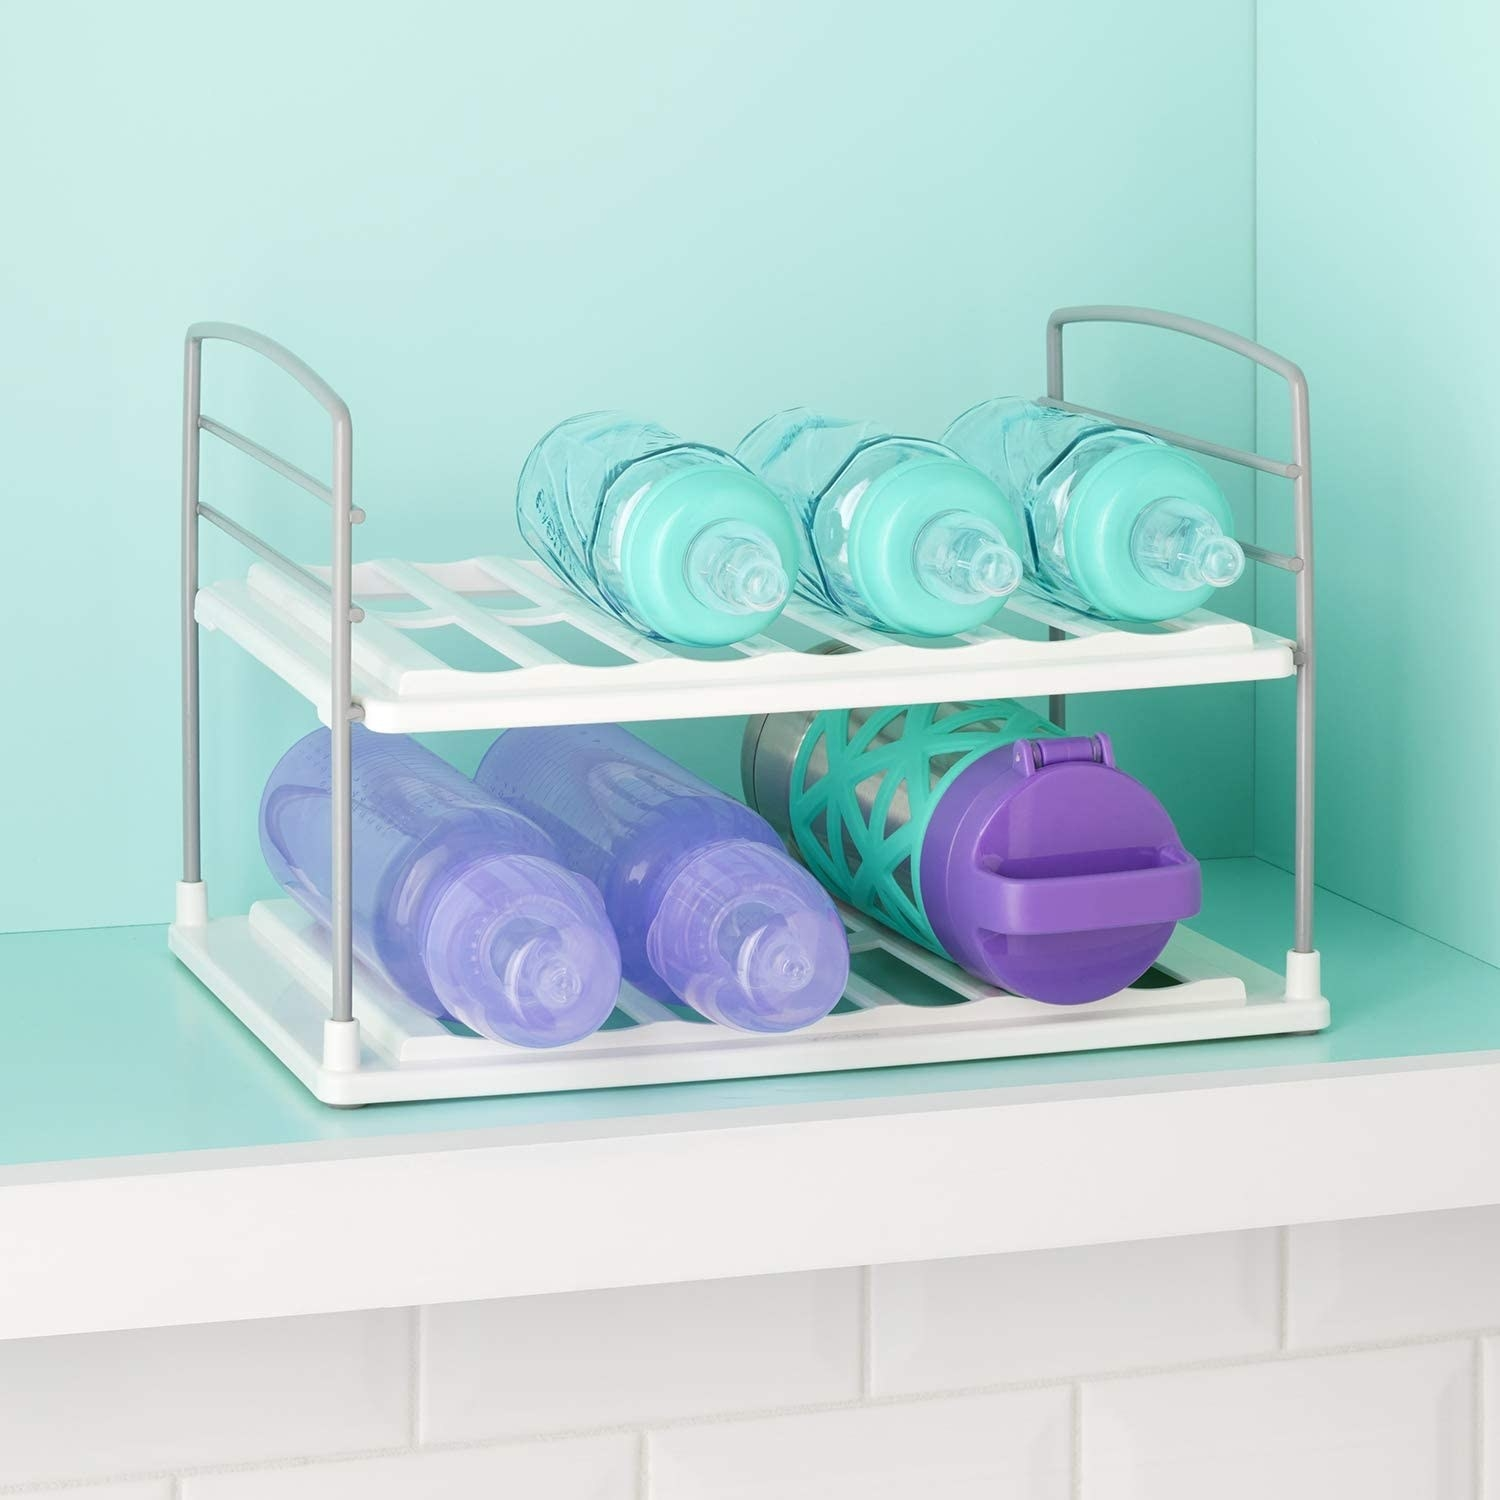 A grooved water bottle rack inside a kitchen cabinet